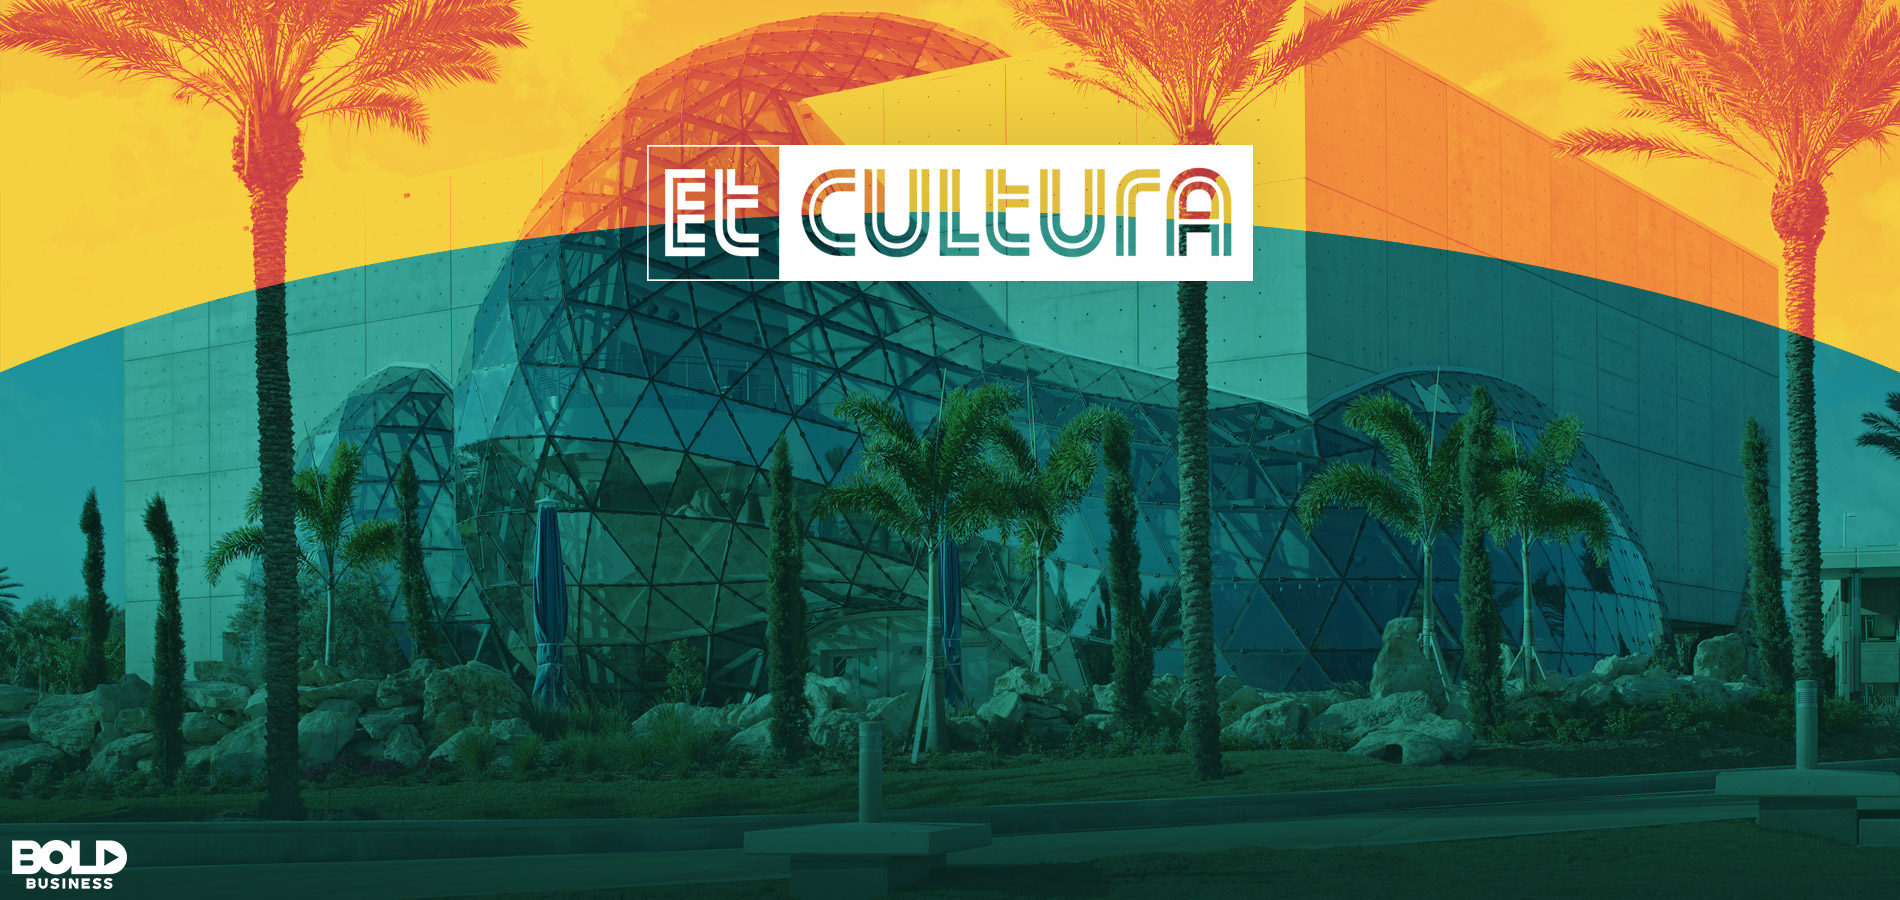 Et Cultura logo overlays palm tree lined street image